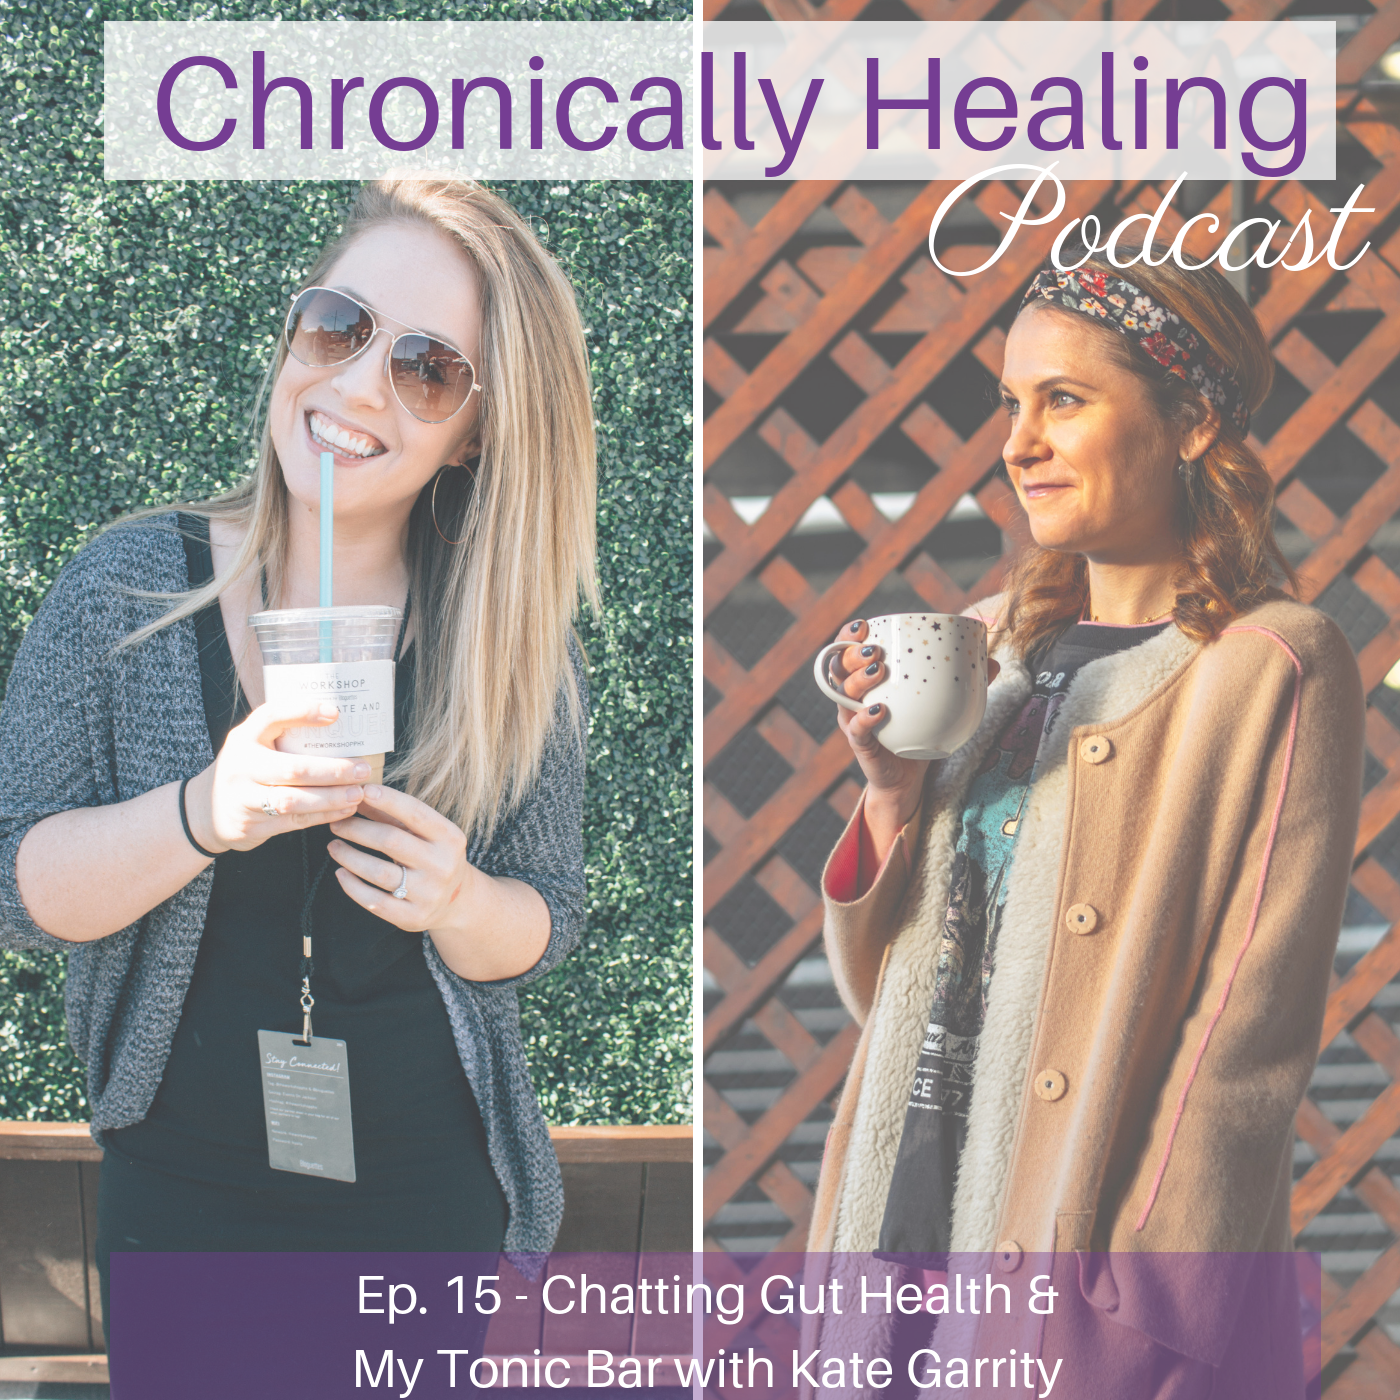 Chronically Healing Podcast Ep. 15 - Chatting Gut Health & Tonic Bar with Kate Garrity